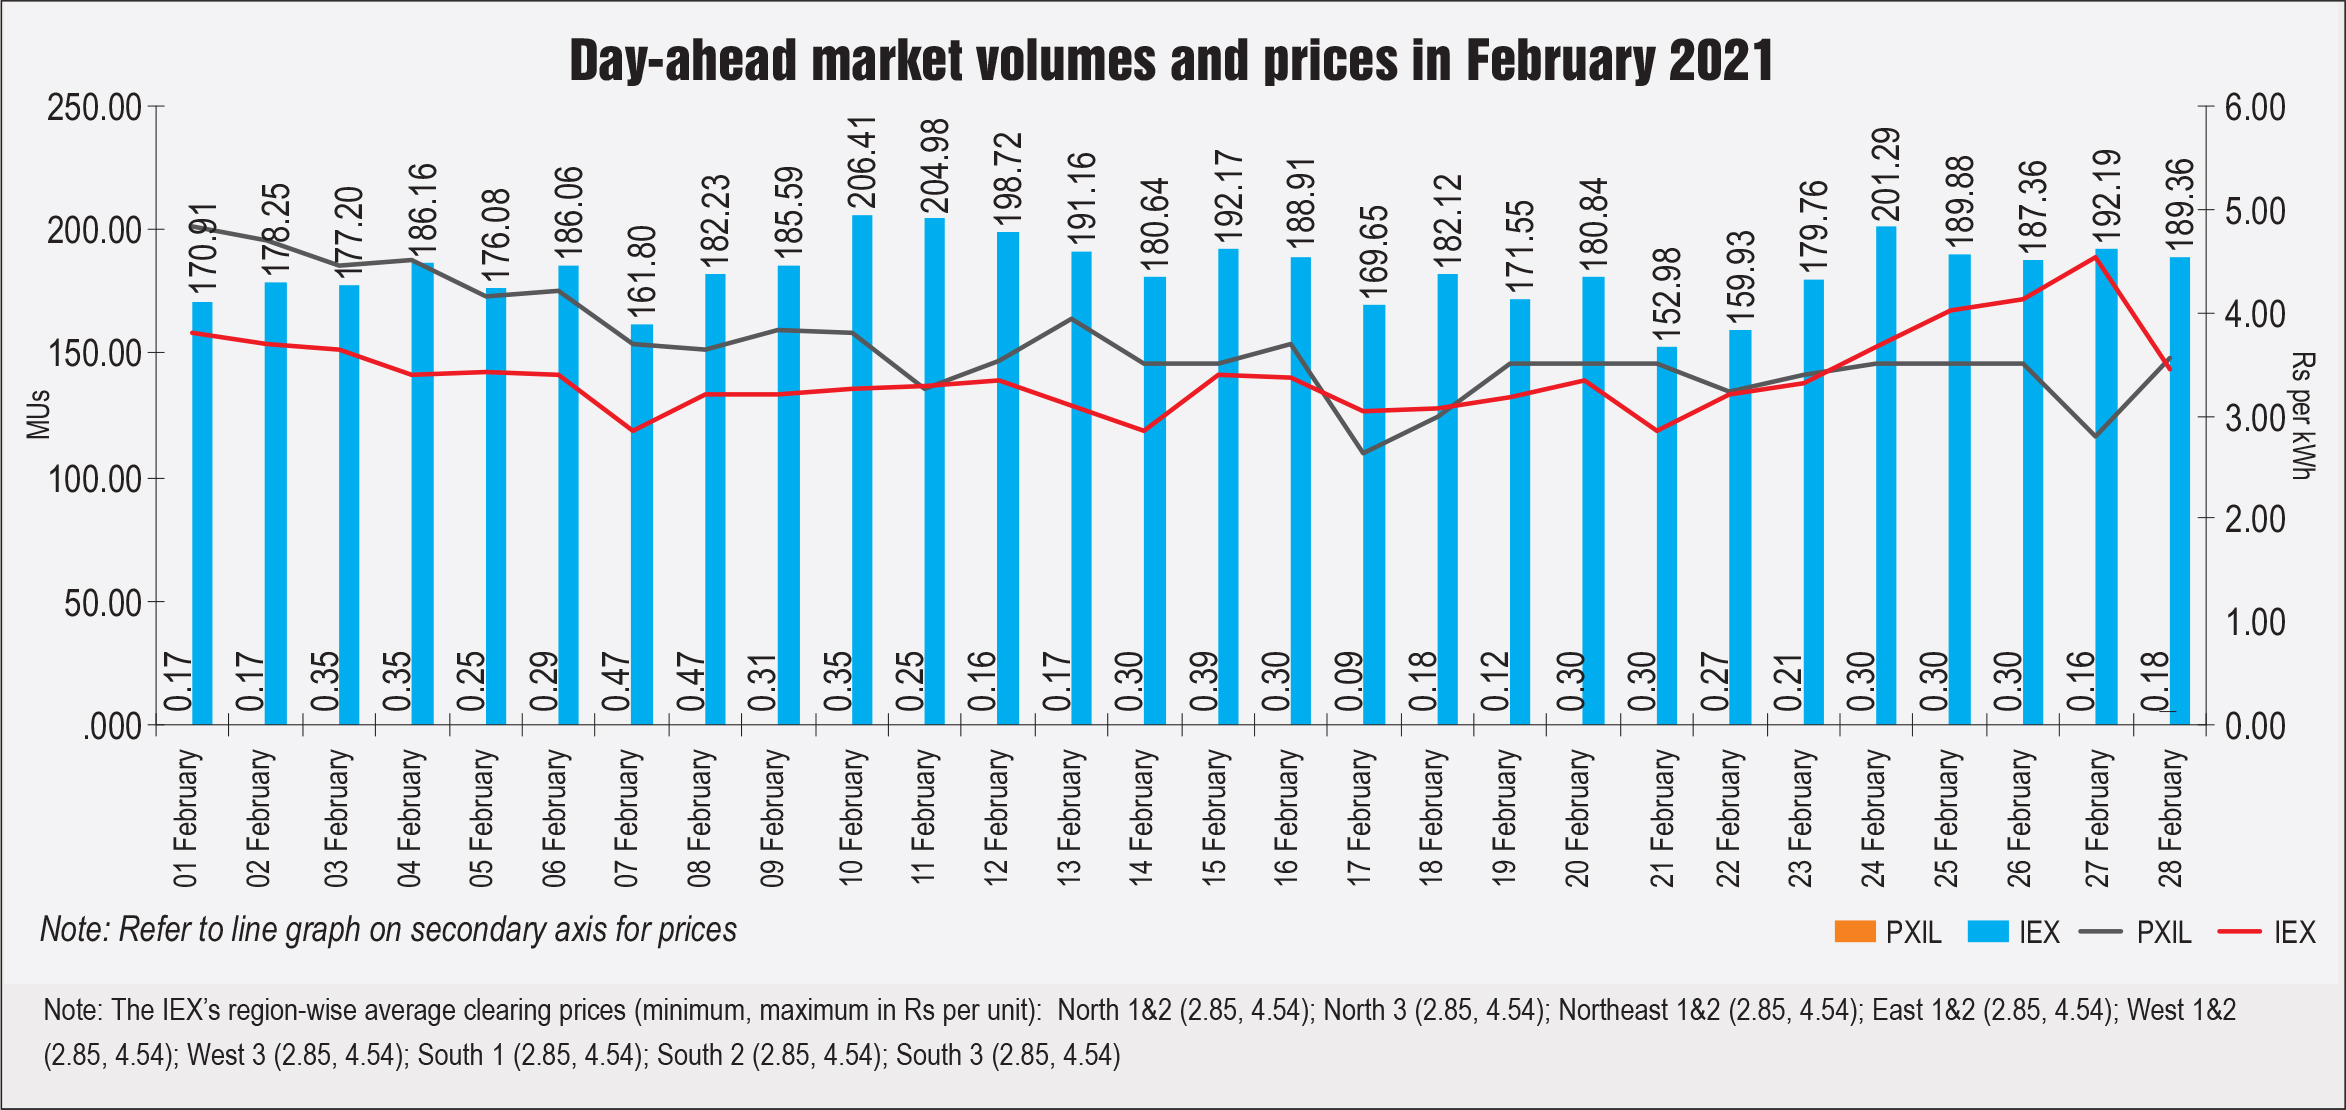 Day-ahead market volumes and prices in February 2021